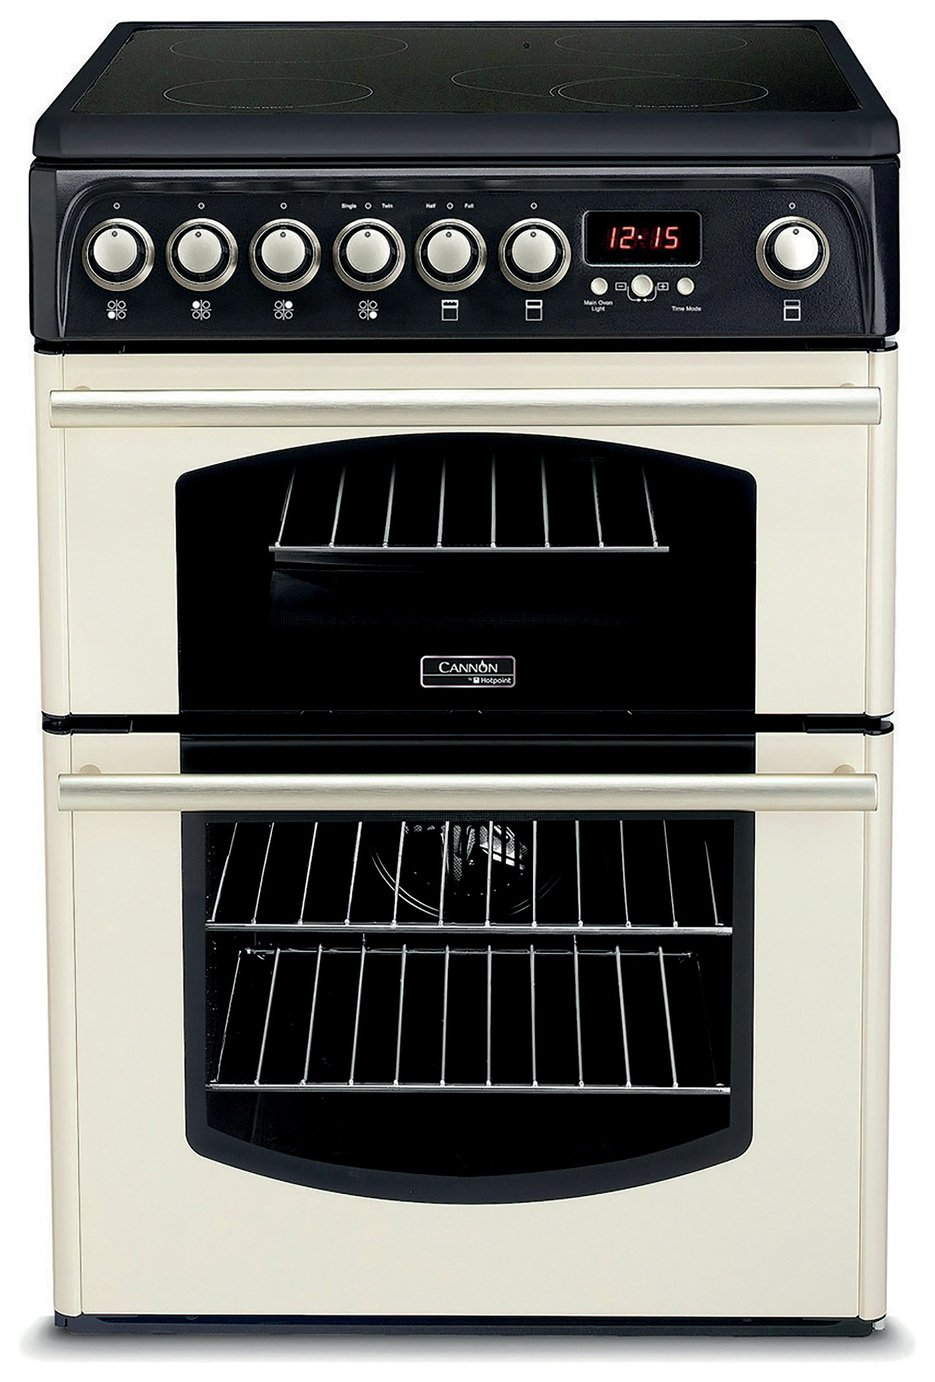 Hotpoint CH60ETC 60cm Double Oven Electric Cooker - Cream